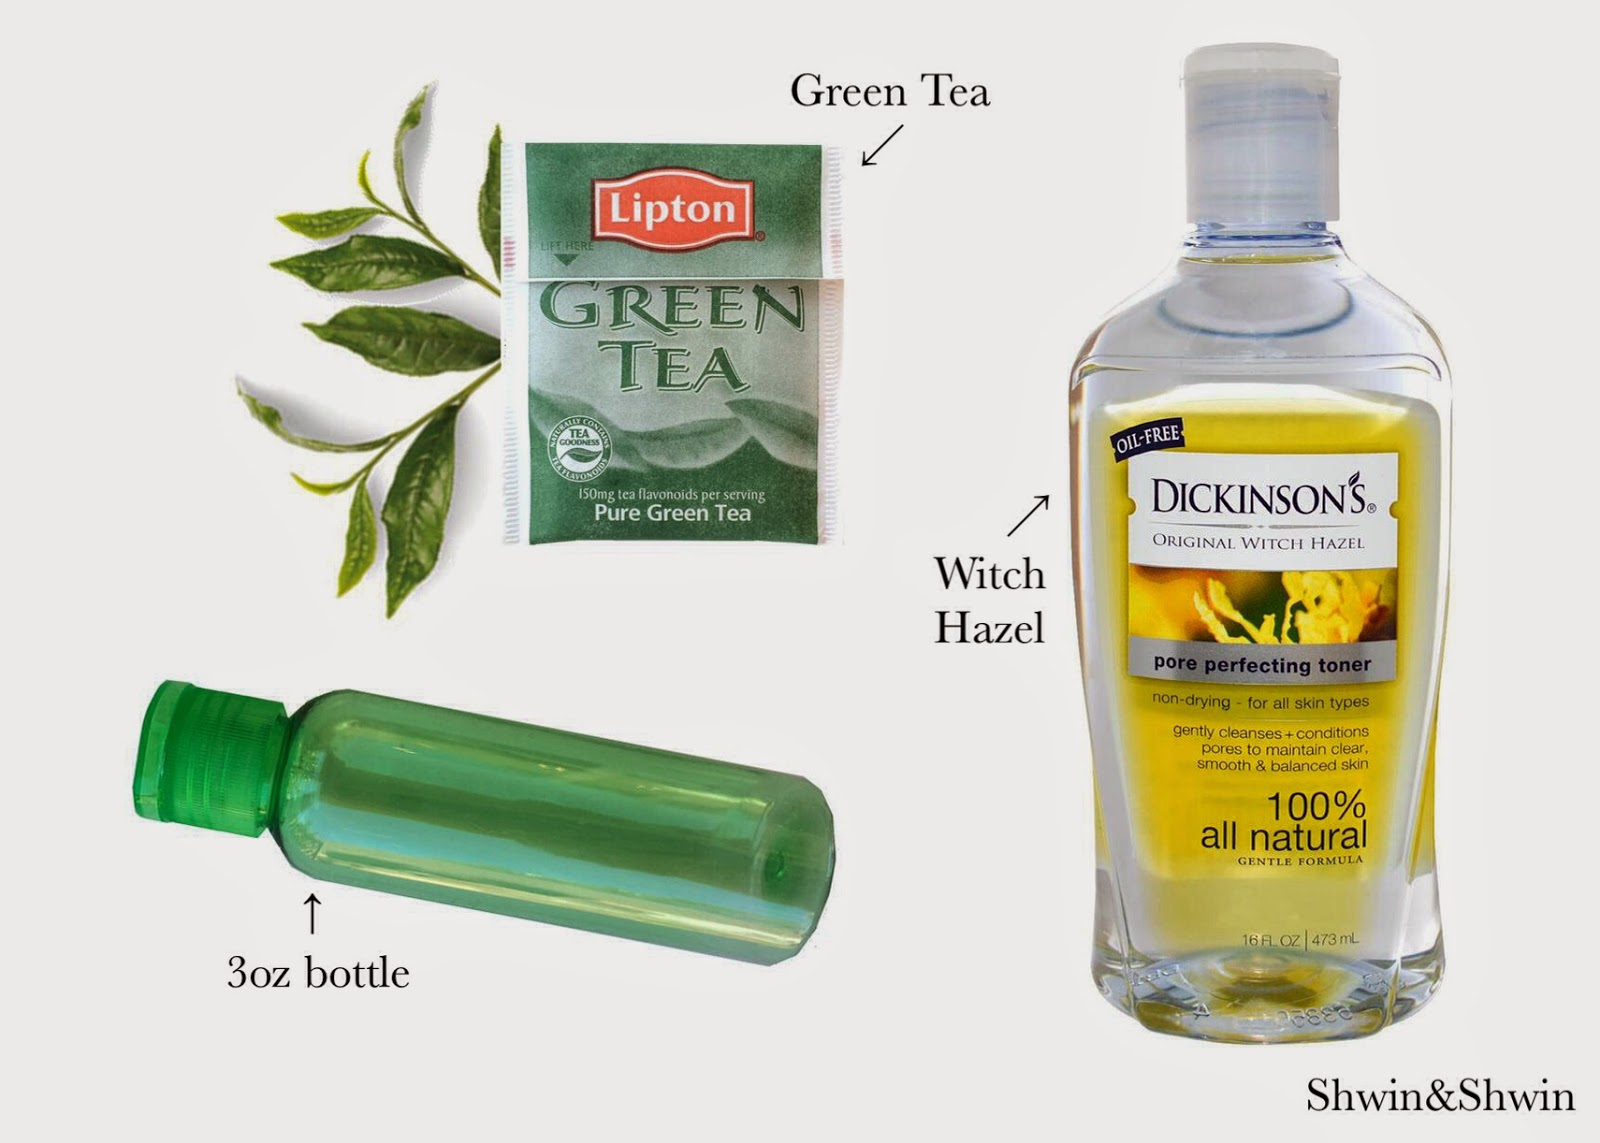 Diy green tea toner shwin and shwin appearance of pores and gives your skin a youthful glow next time you make yourself up a cup of green tea why not make a wonderful green tea toner too solutioingenieria Image collections